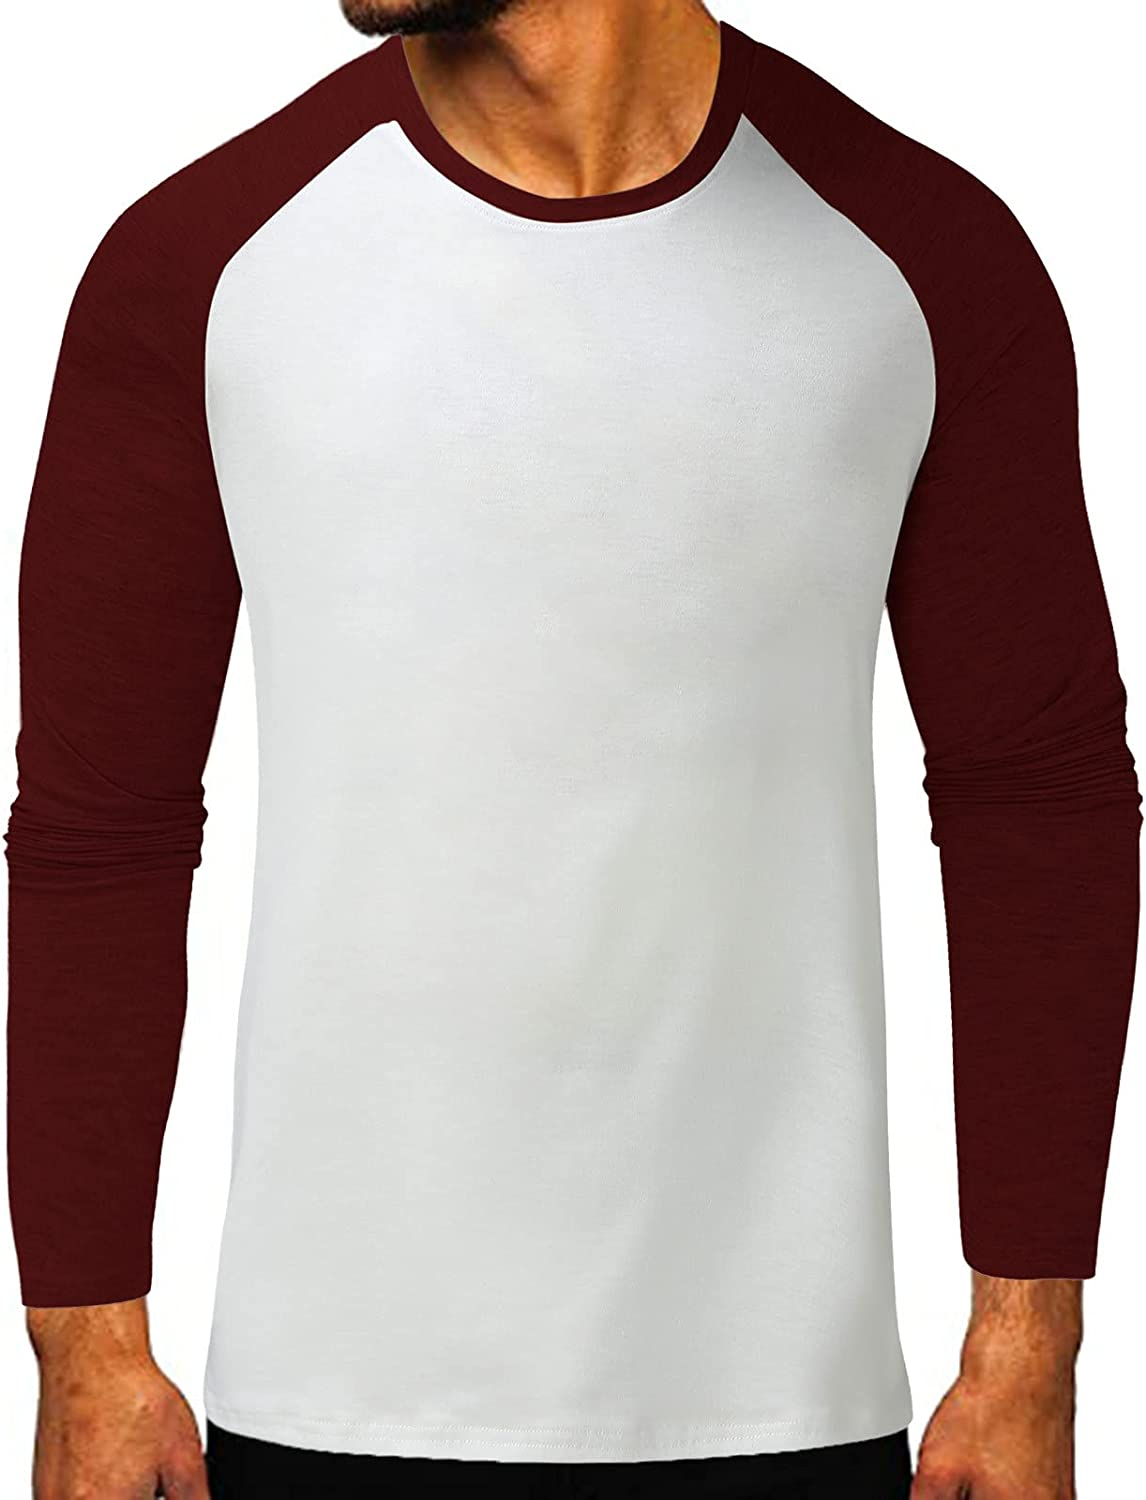 WoCoo Mens Henley T-Shirt Solid Long Sleeve Pollover Tops Gym Muscle Button Down Blouse Casual Slim Workout Tops